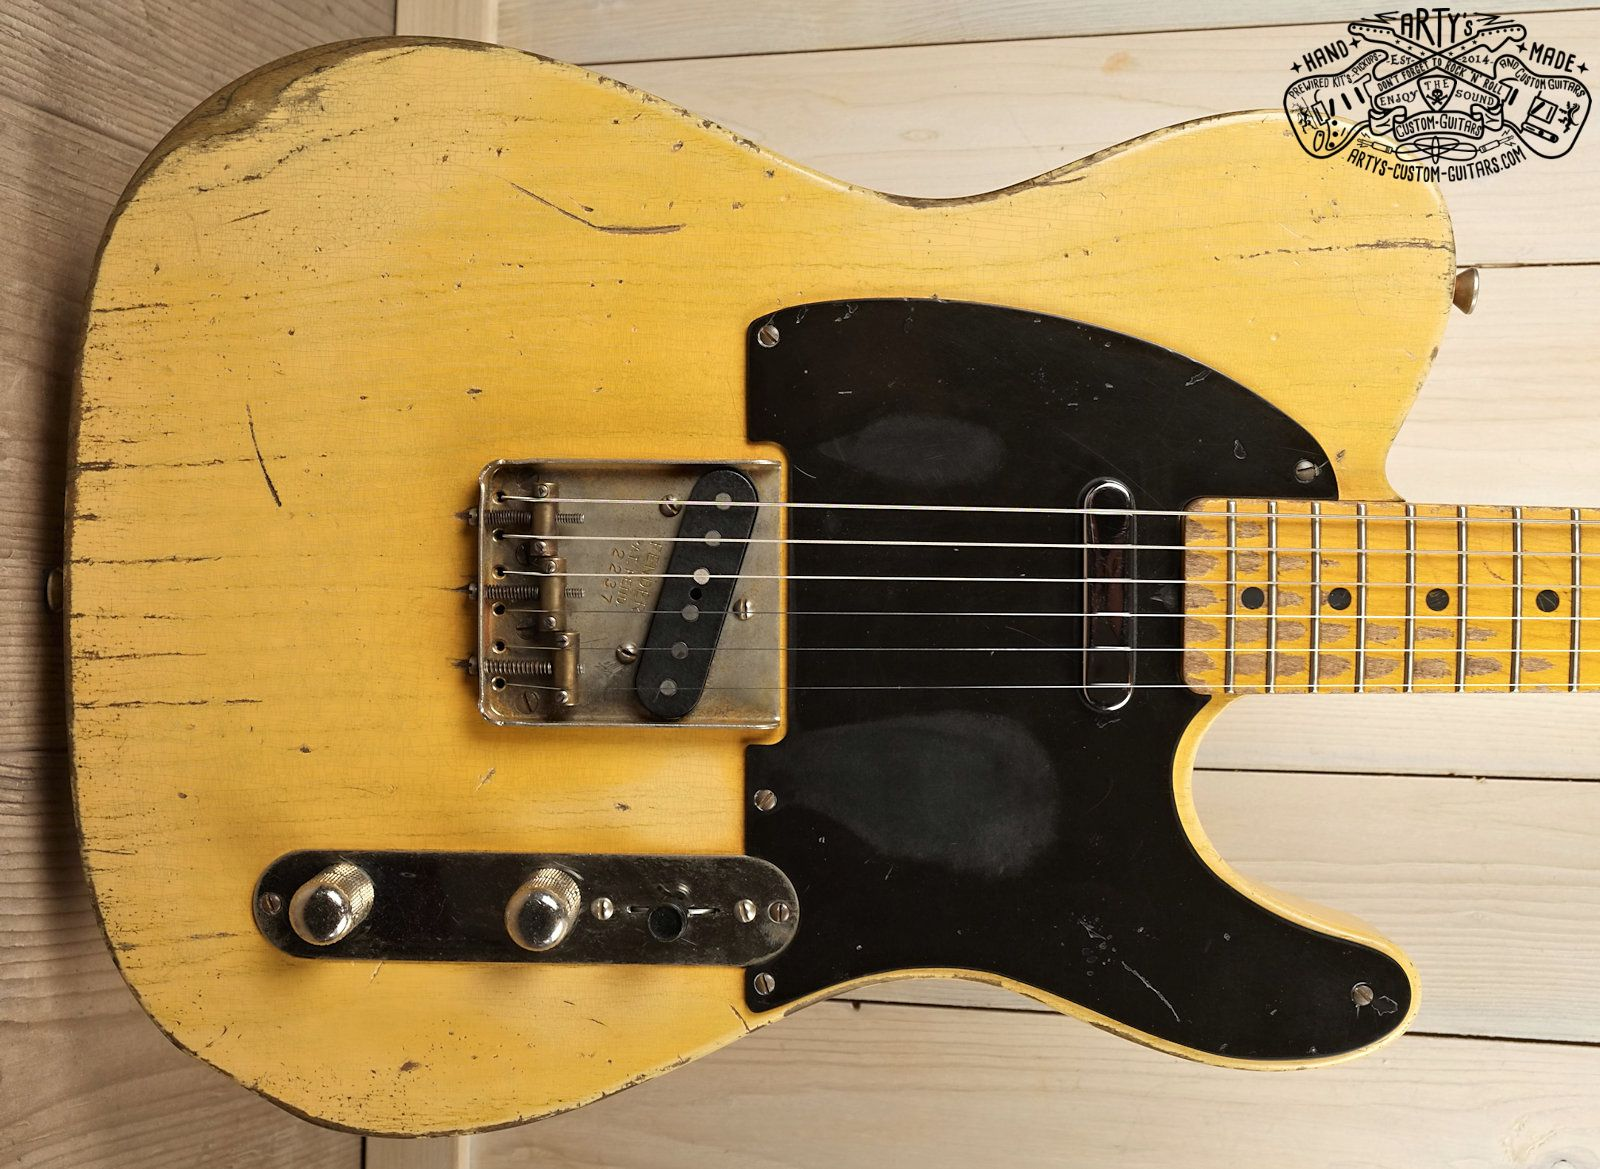 Broadcaster Butterscotch Blonde Telecaster Heavy Relic Tele Maple Neck Swamp Ash Body Bakelite Pickguard Aged Nitro Finish Art Custom Guitars Telecaster Guitar